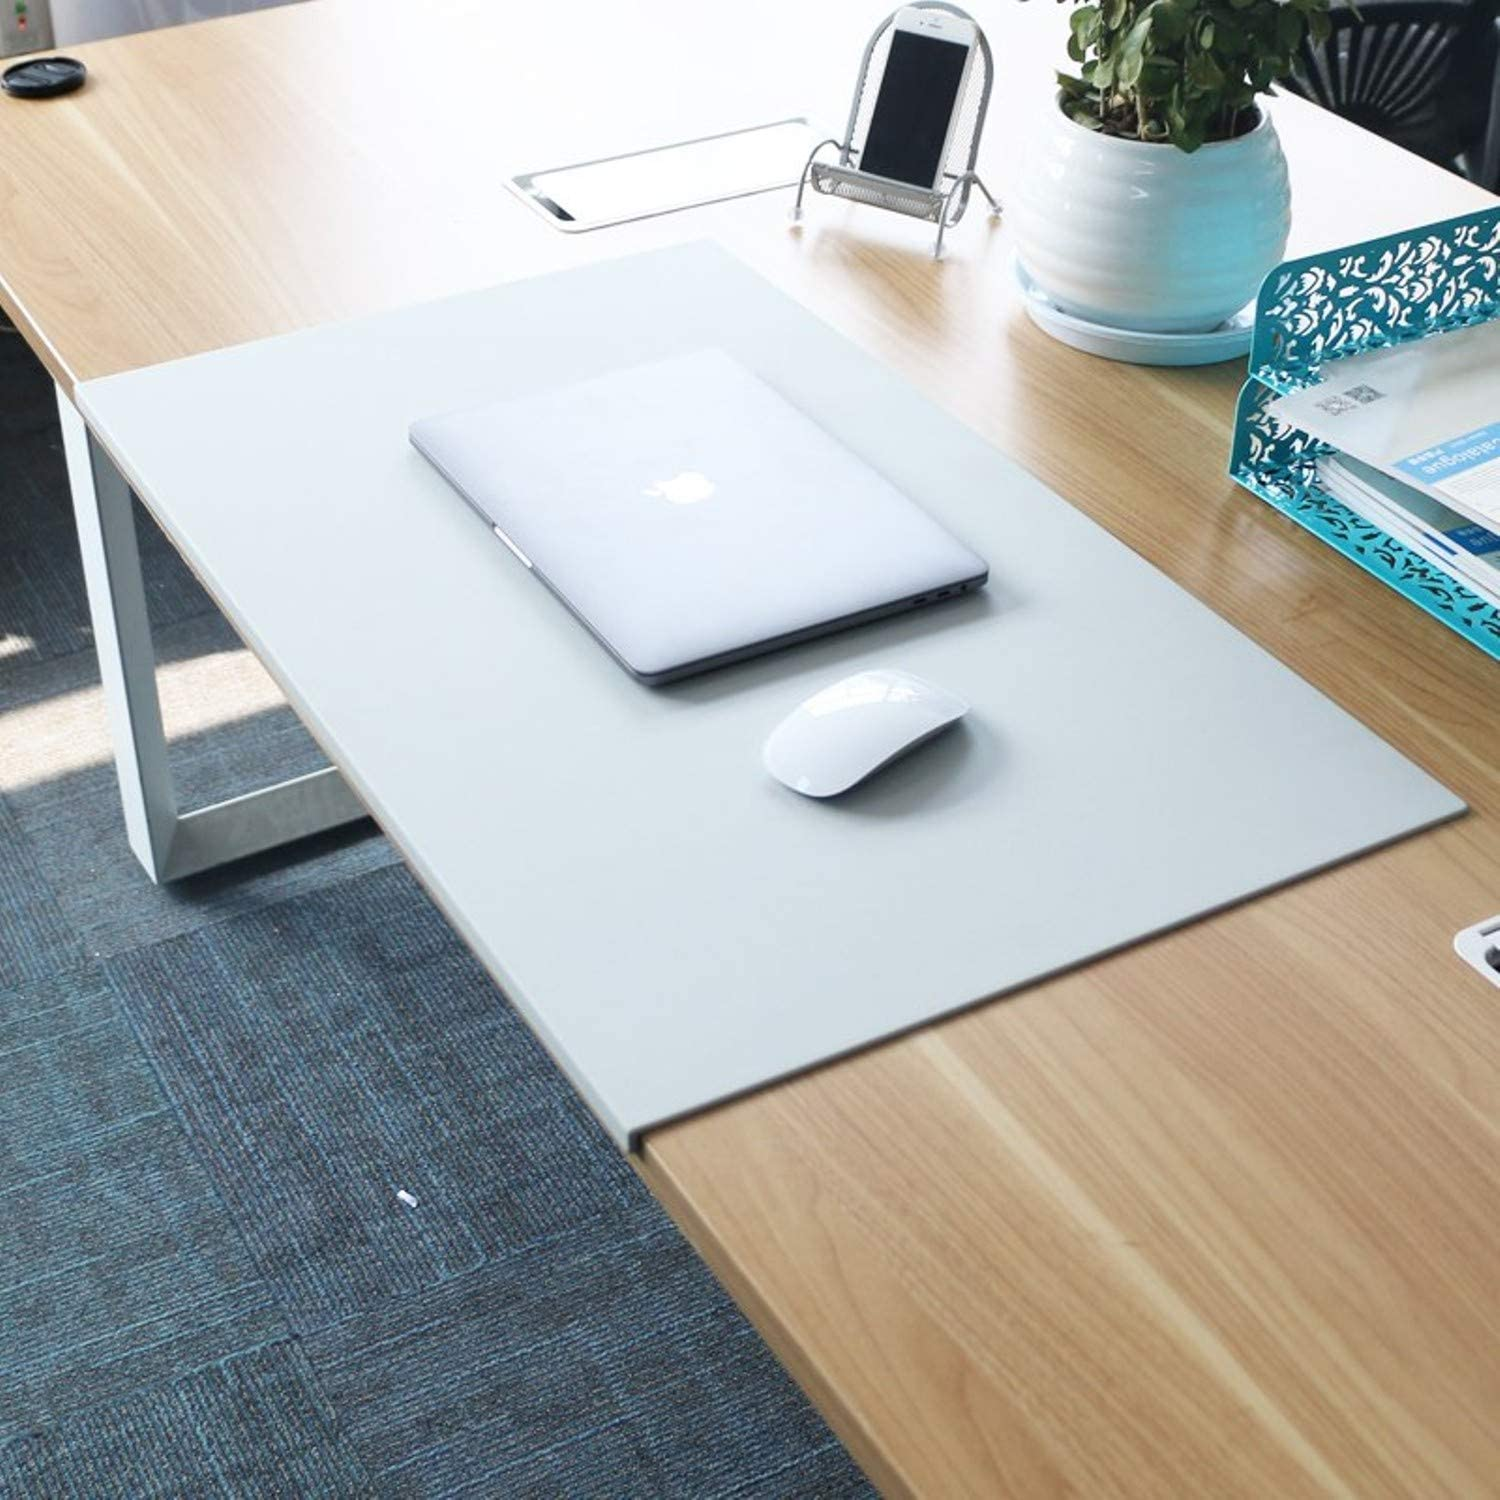 Office appliances TPU Material Plastic tablecloths Desk mats Business Table Carpet Computer mat odorless Brown Desk mat Mouse pad